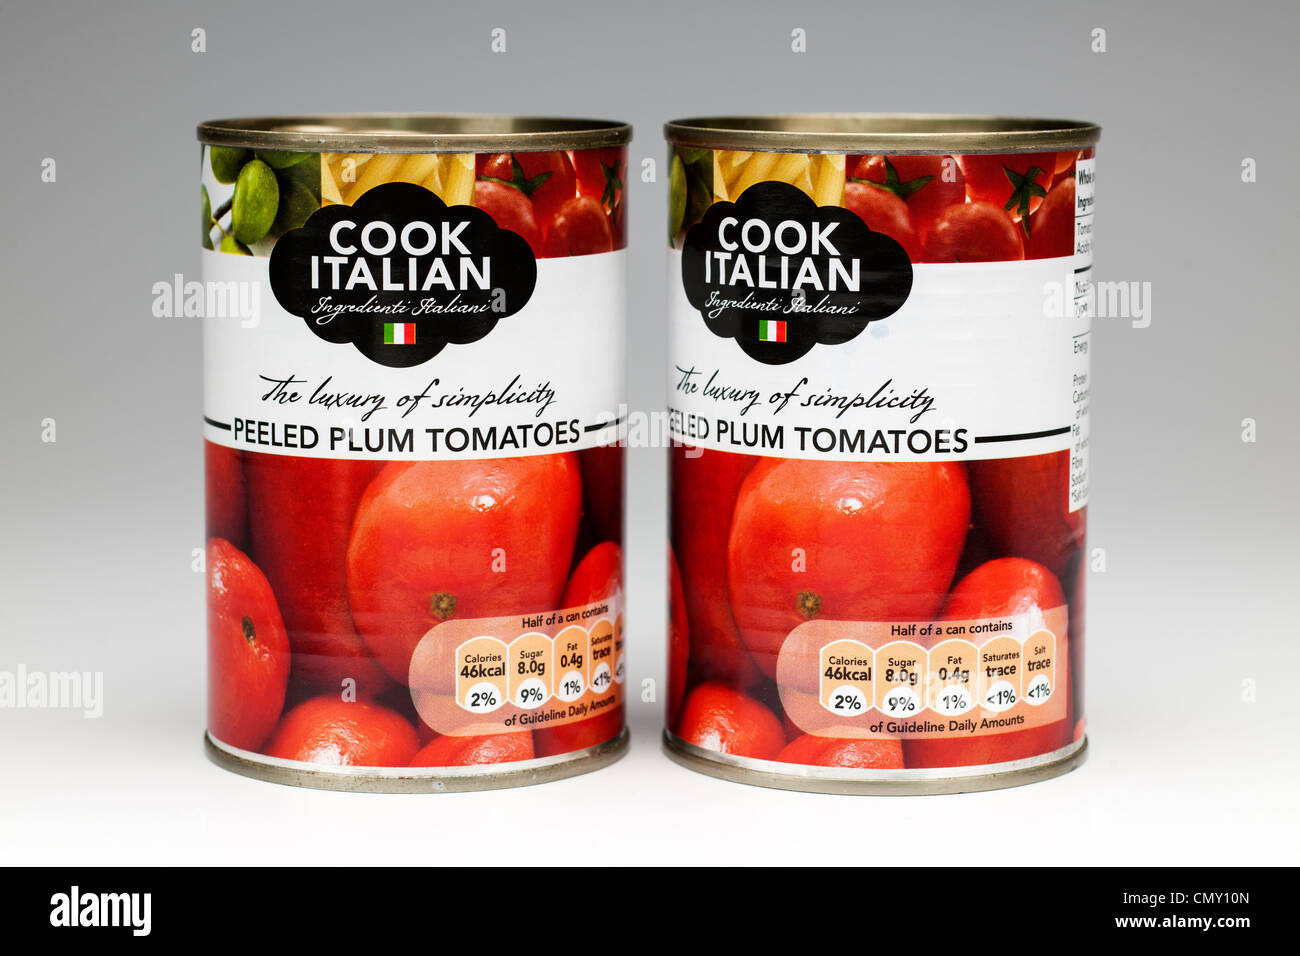 Two tins of Cook Italian Peeled Plum Tomatoes - Stock Image